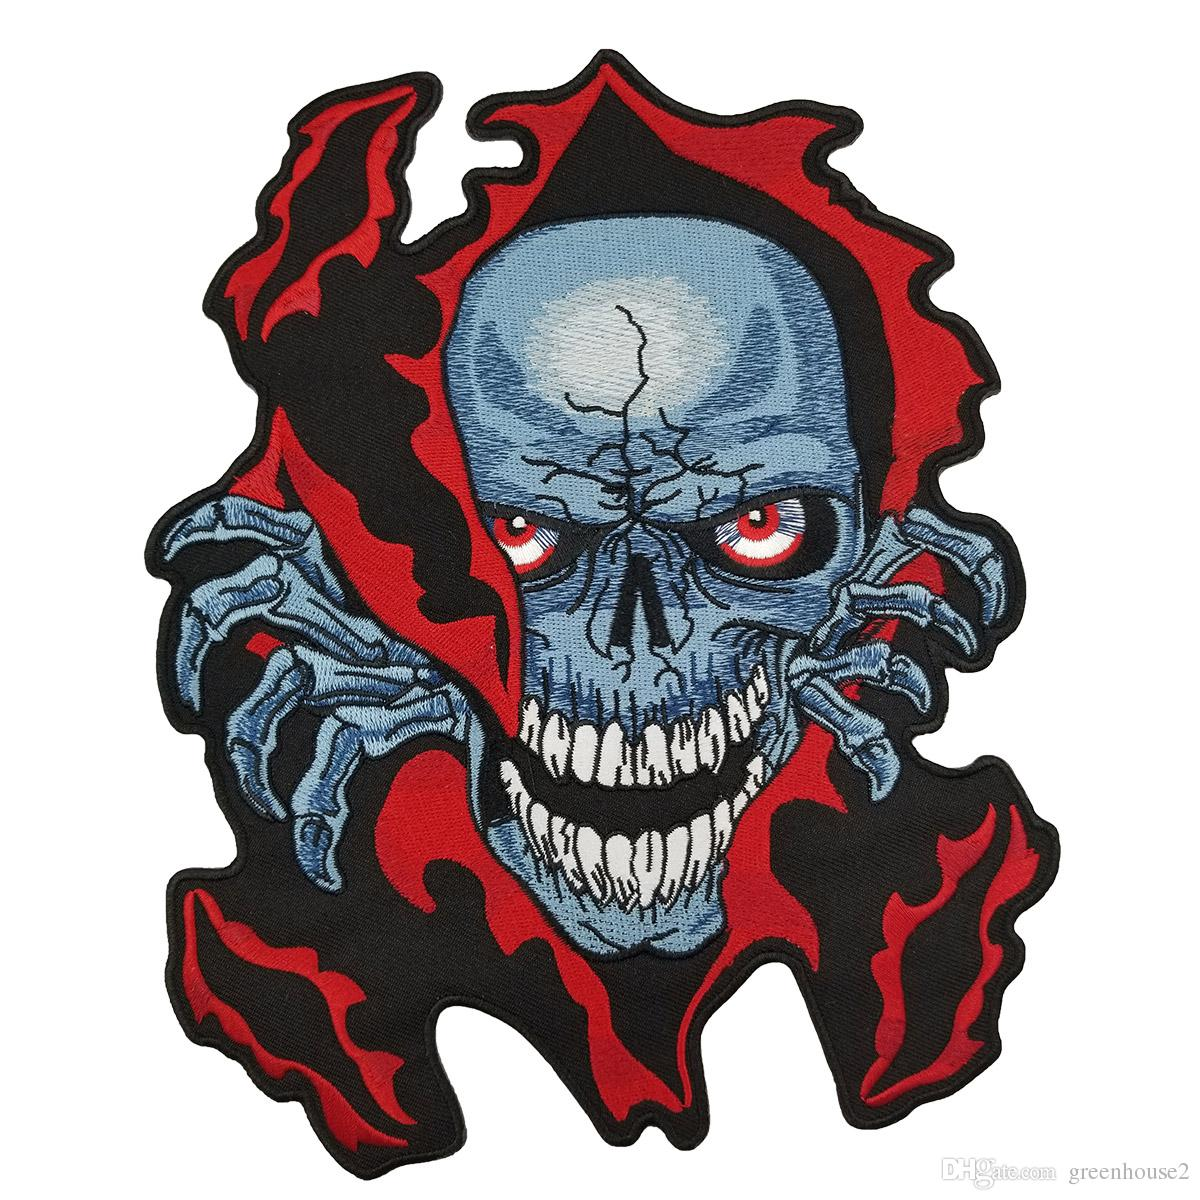 Red Skull Embroidered Patch Iron On Back of Jacket Patch Black Twill Fabric Free Shipping Custom DIY